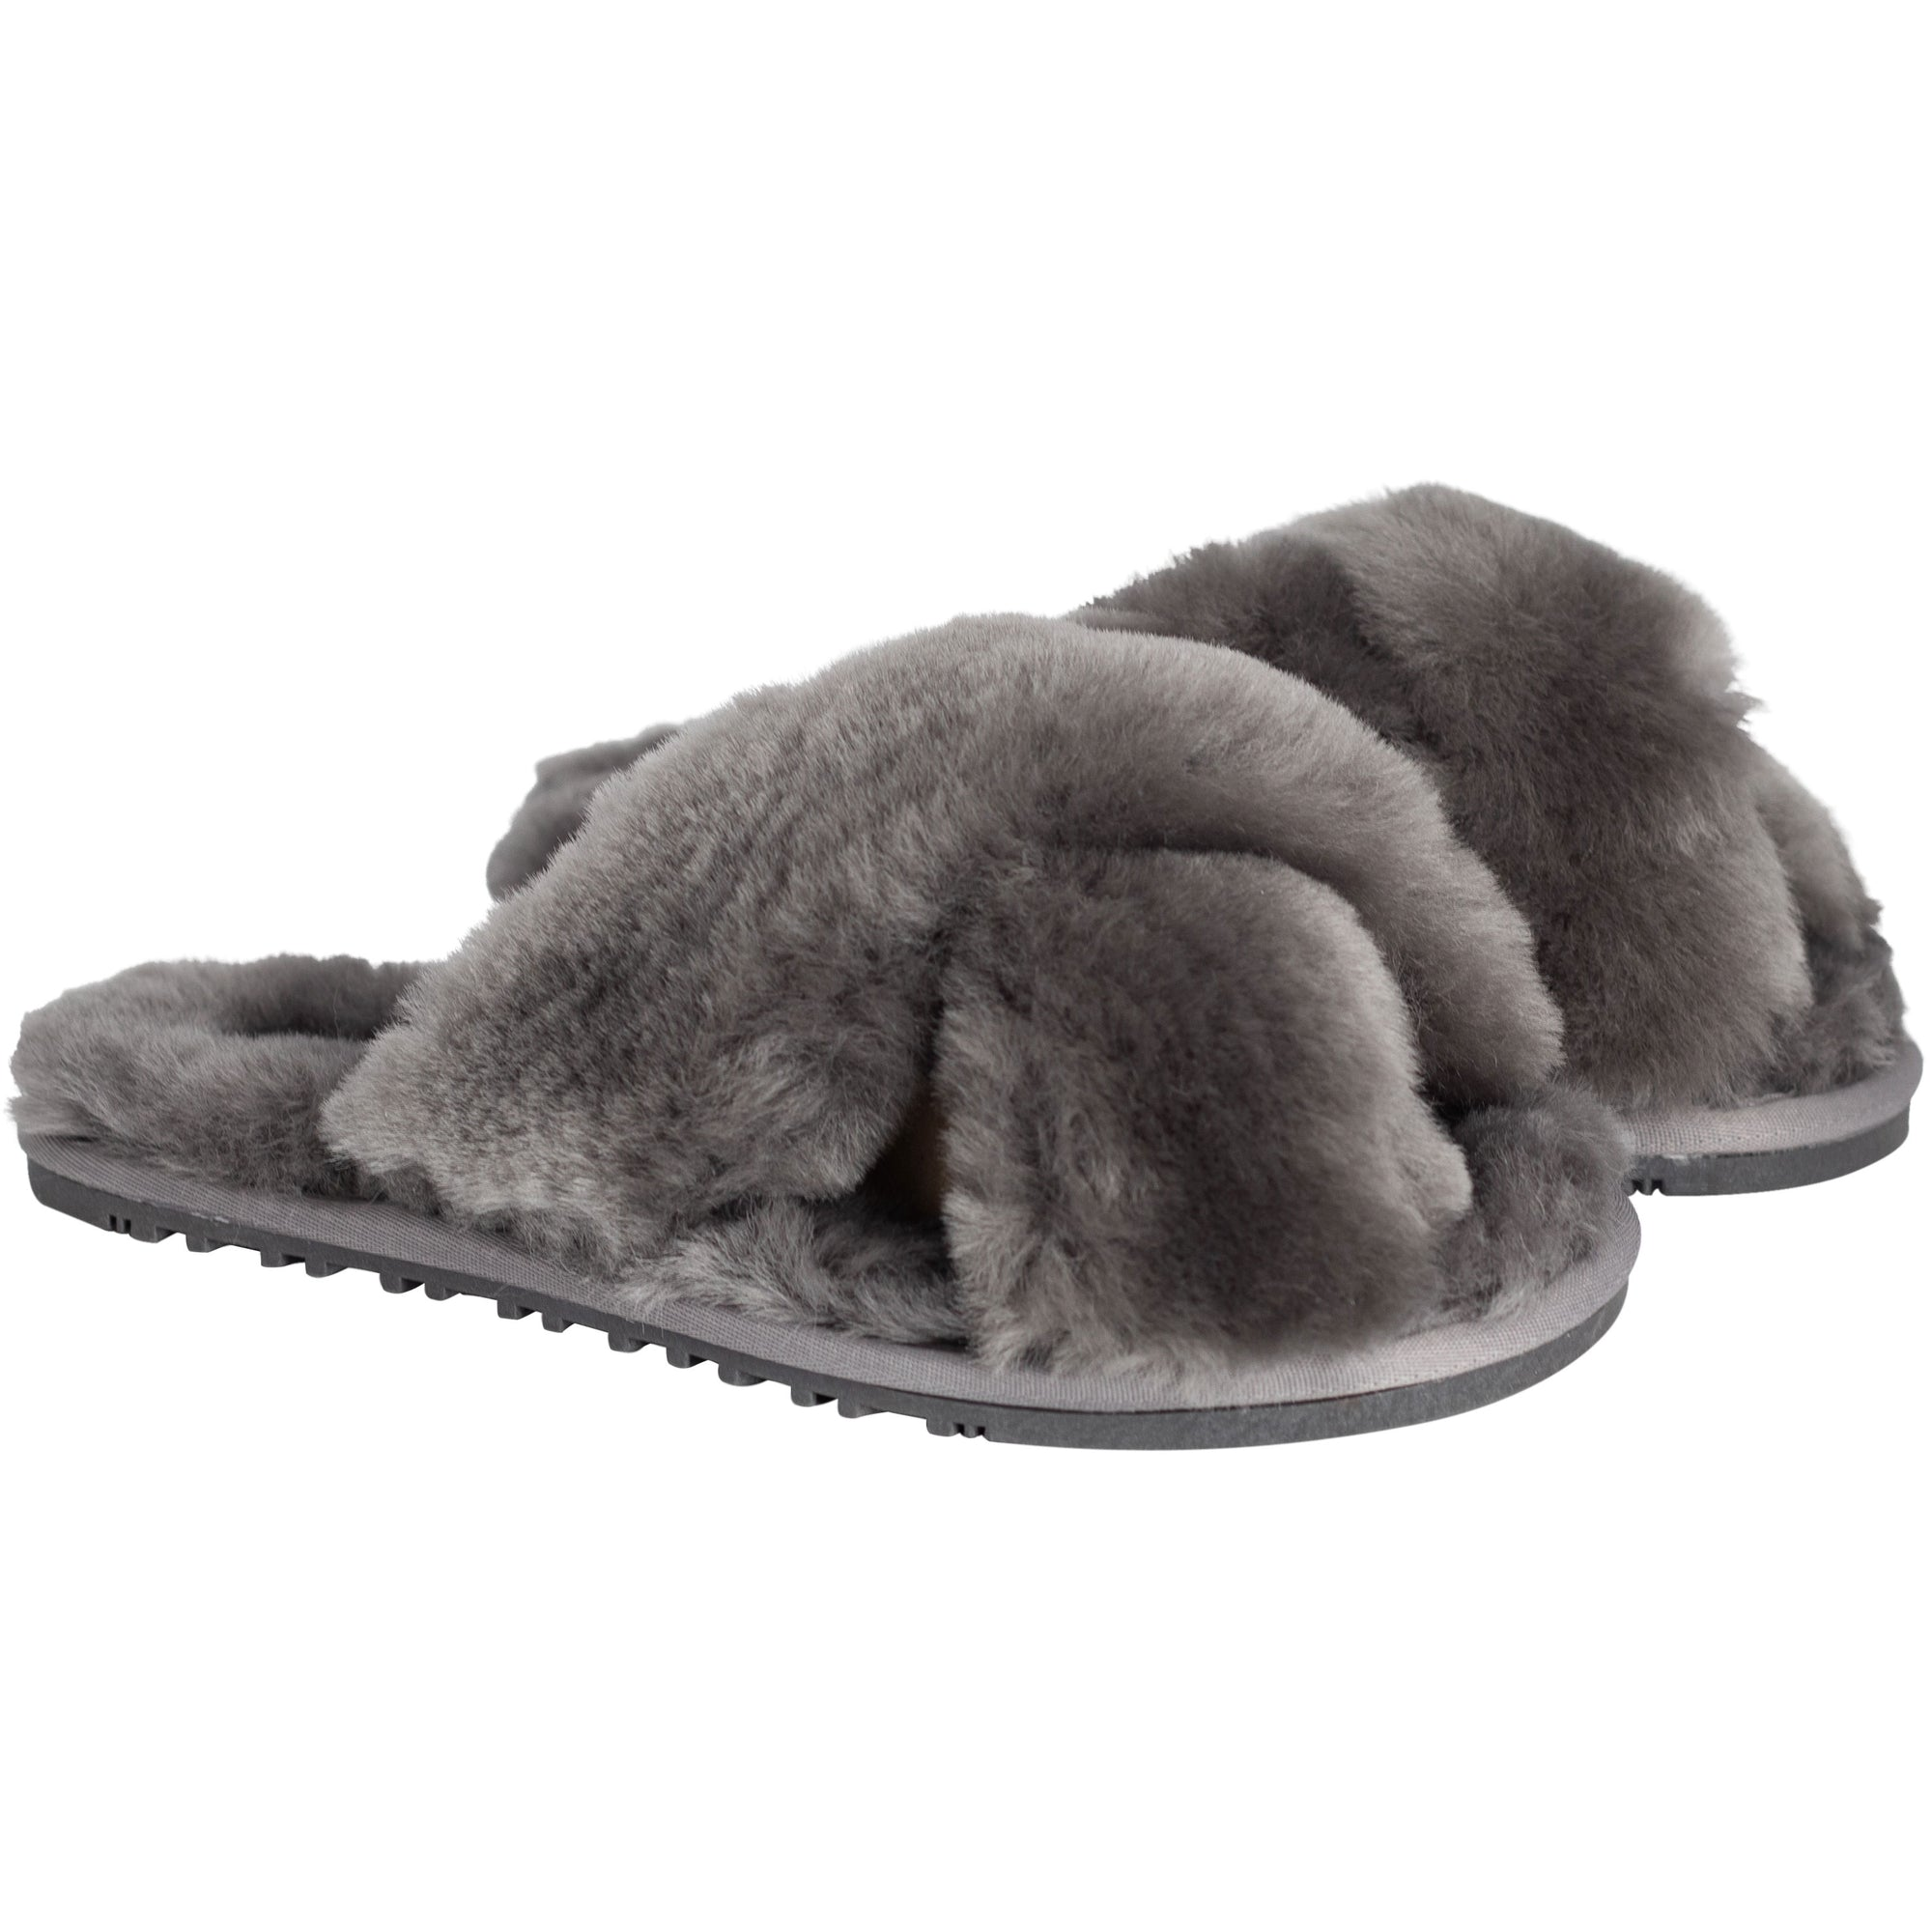 Rachel Grey Slipper KiwiGear